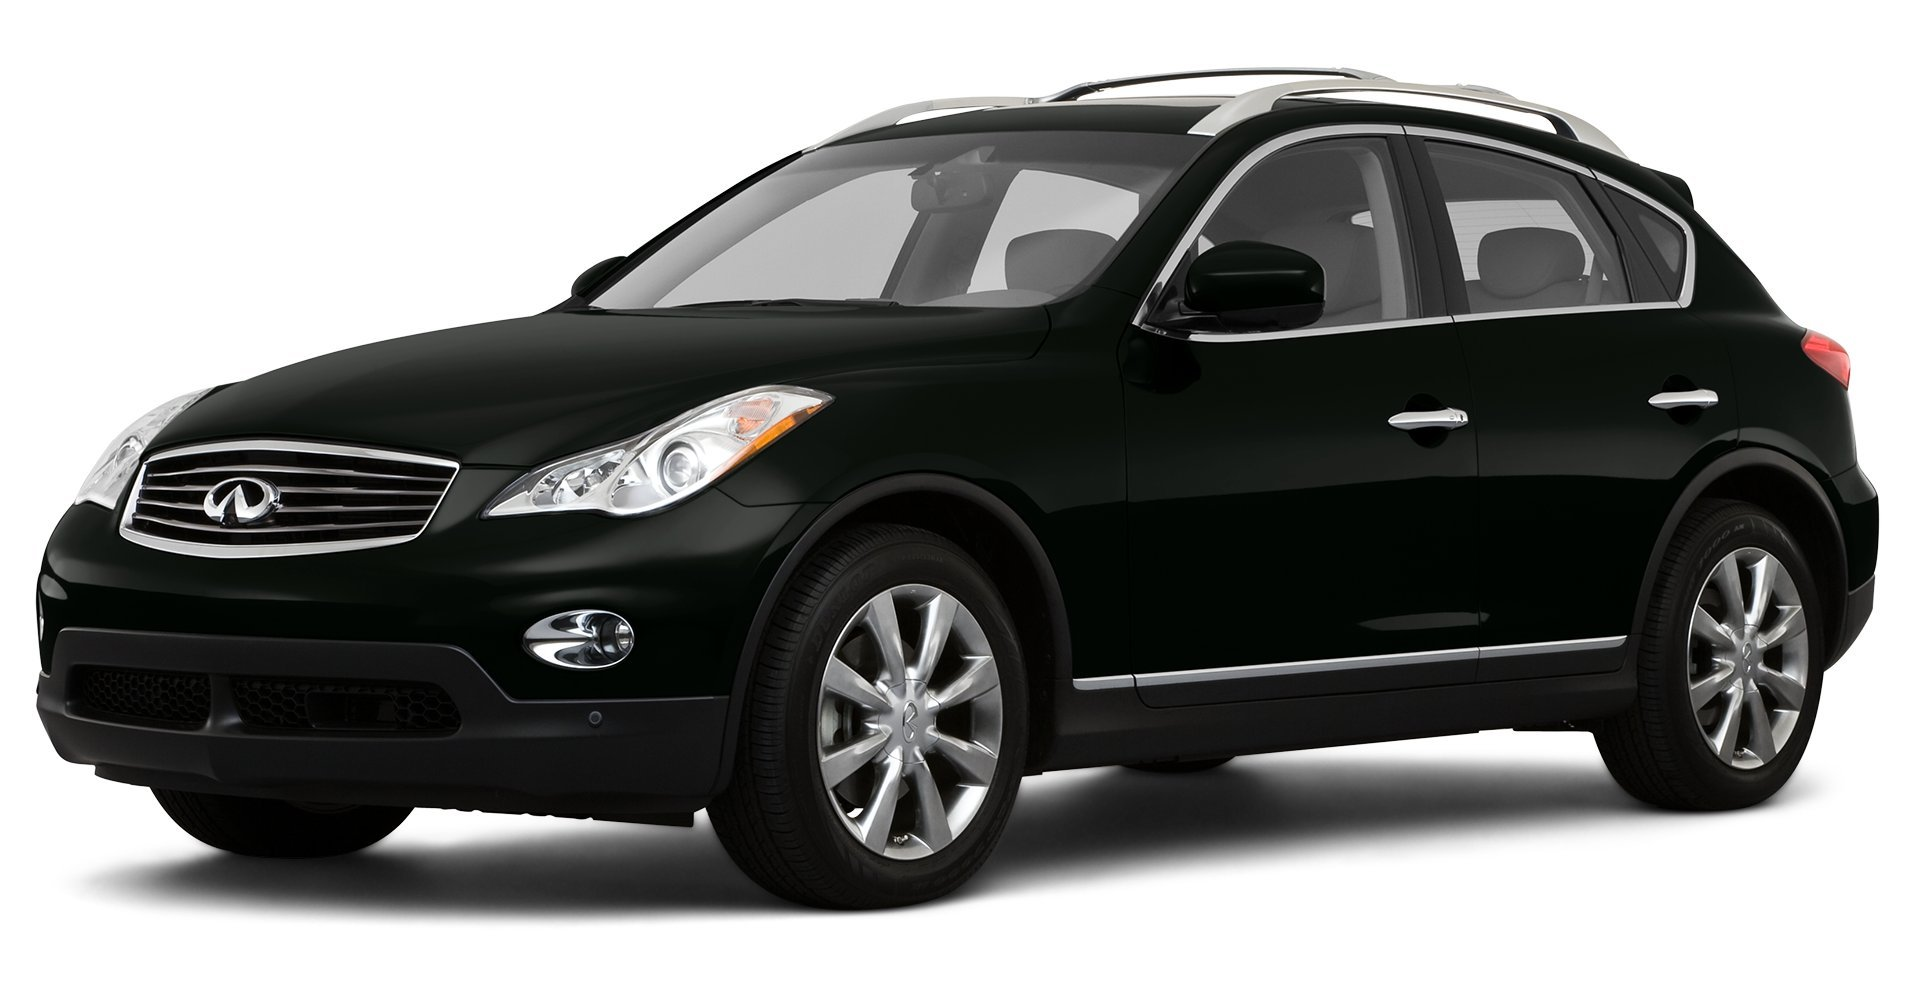 Amazon 2009 nissan murano reviews images and specs vehicles 2009 infiniti ex35 journey all wheel drive 4 door 2009 nissan murano vanachro Image collections